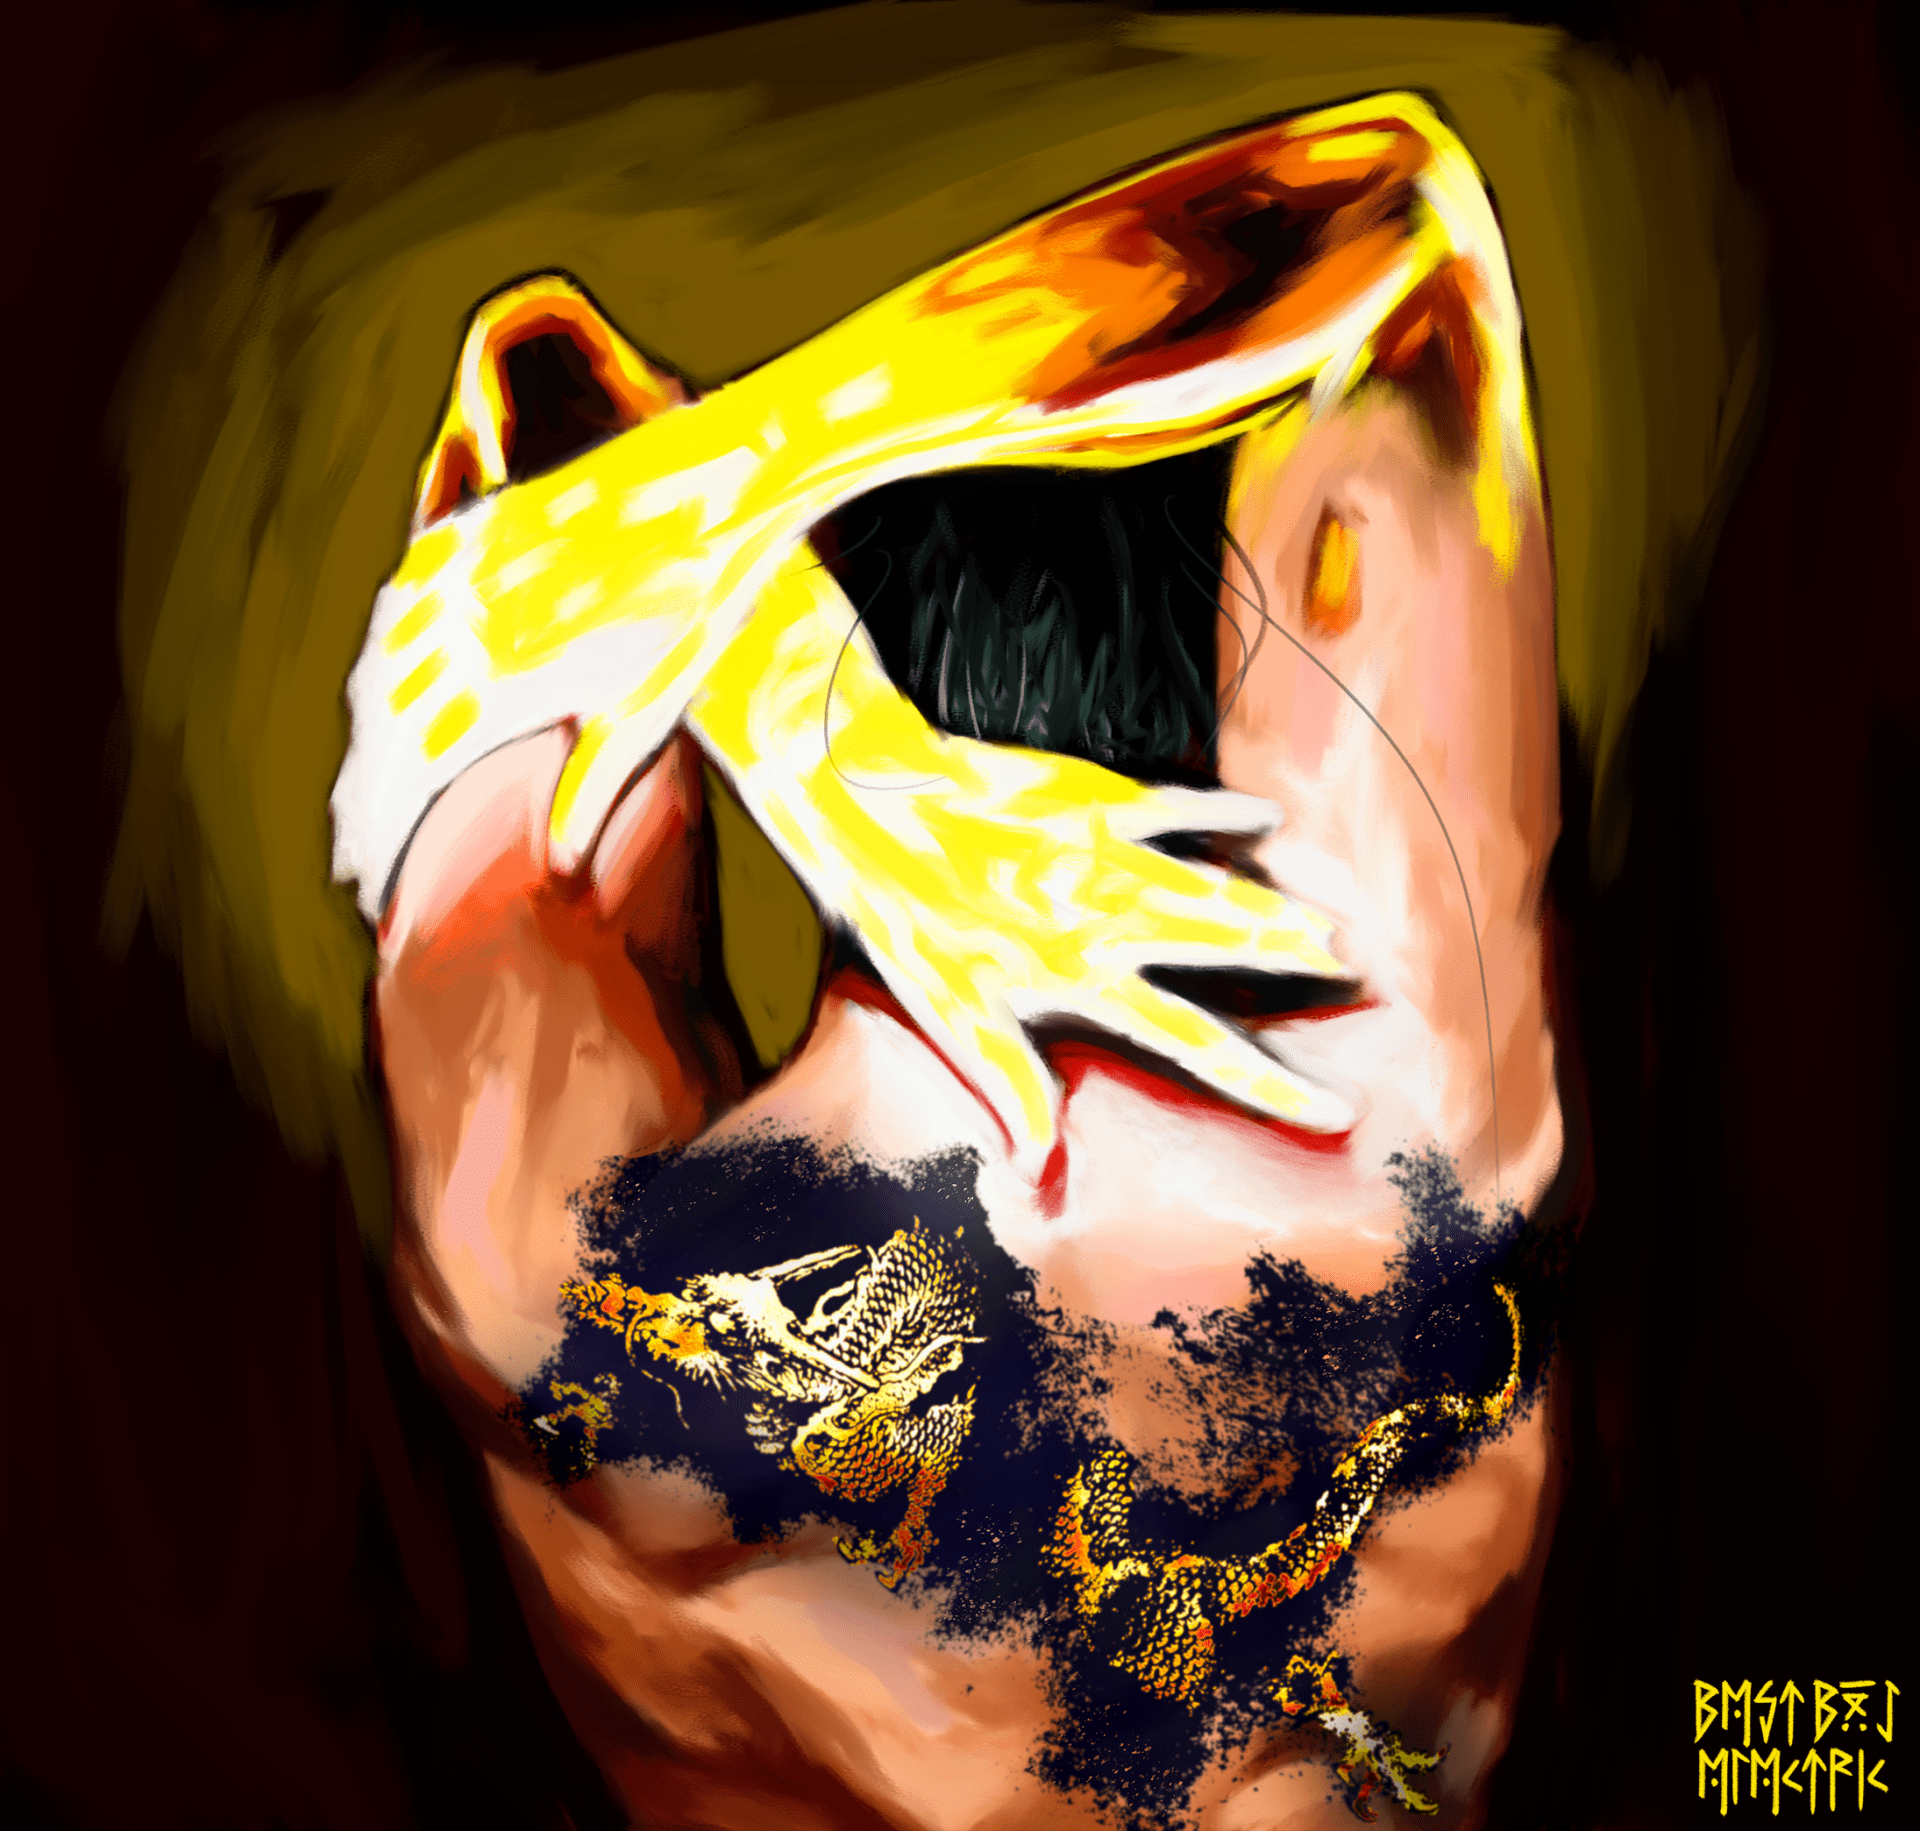 Painting of 'Iron Fist's Back', a piece of concept art painted in Adobe Photoshop to show a potential design for a reimagining of the character.